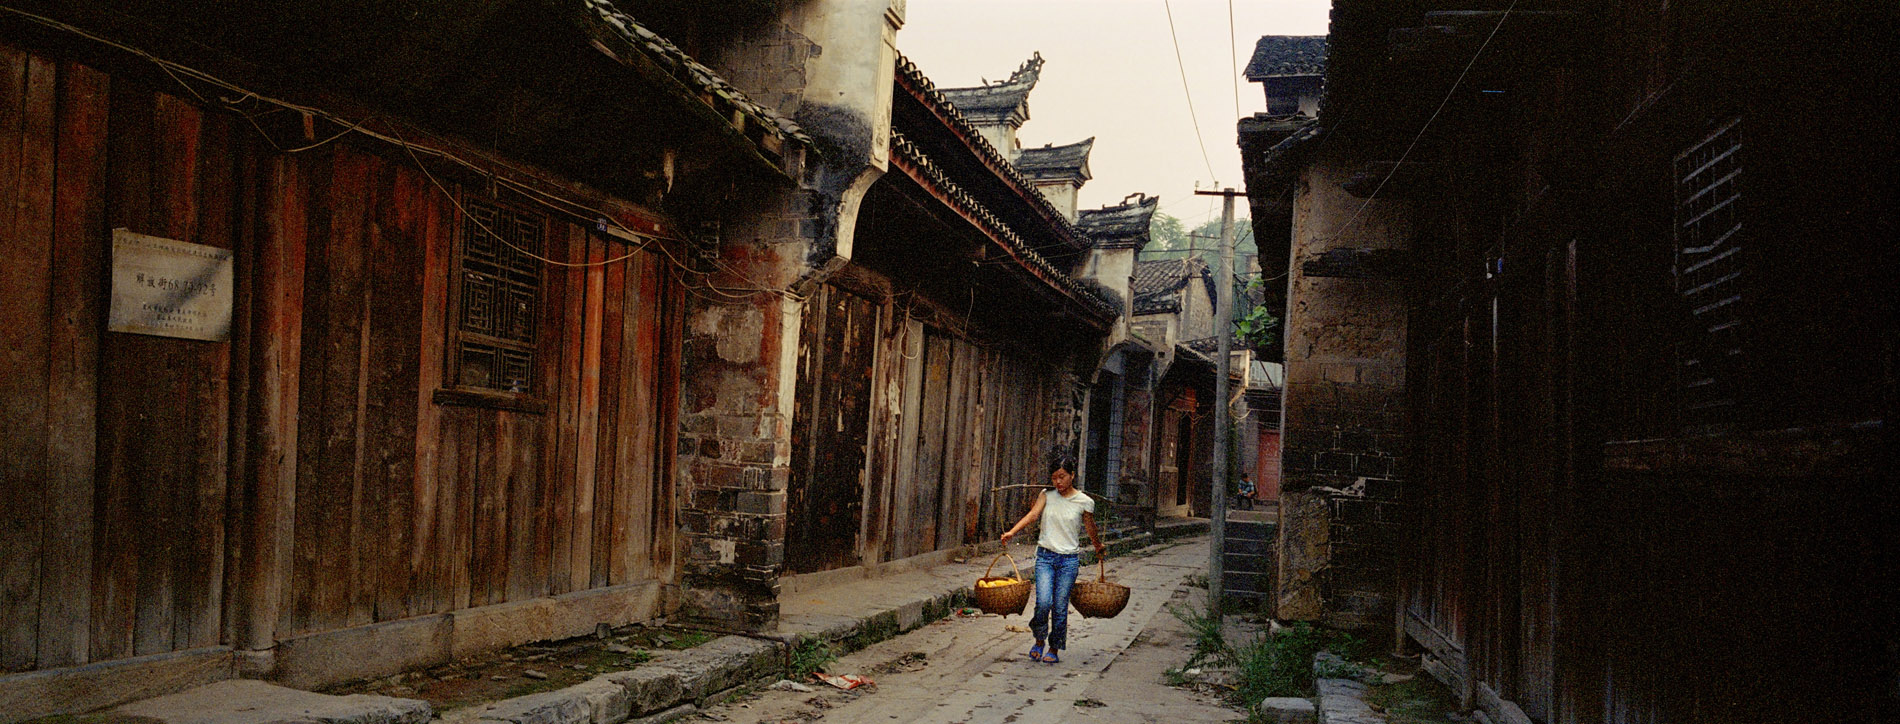 Dachang, a city of over 1700 years of history a few months before its destruction ahead of theflooding. The centuries old houses, typical of Ming rural architecture are already empty of their inhabitants who have relocated further up.